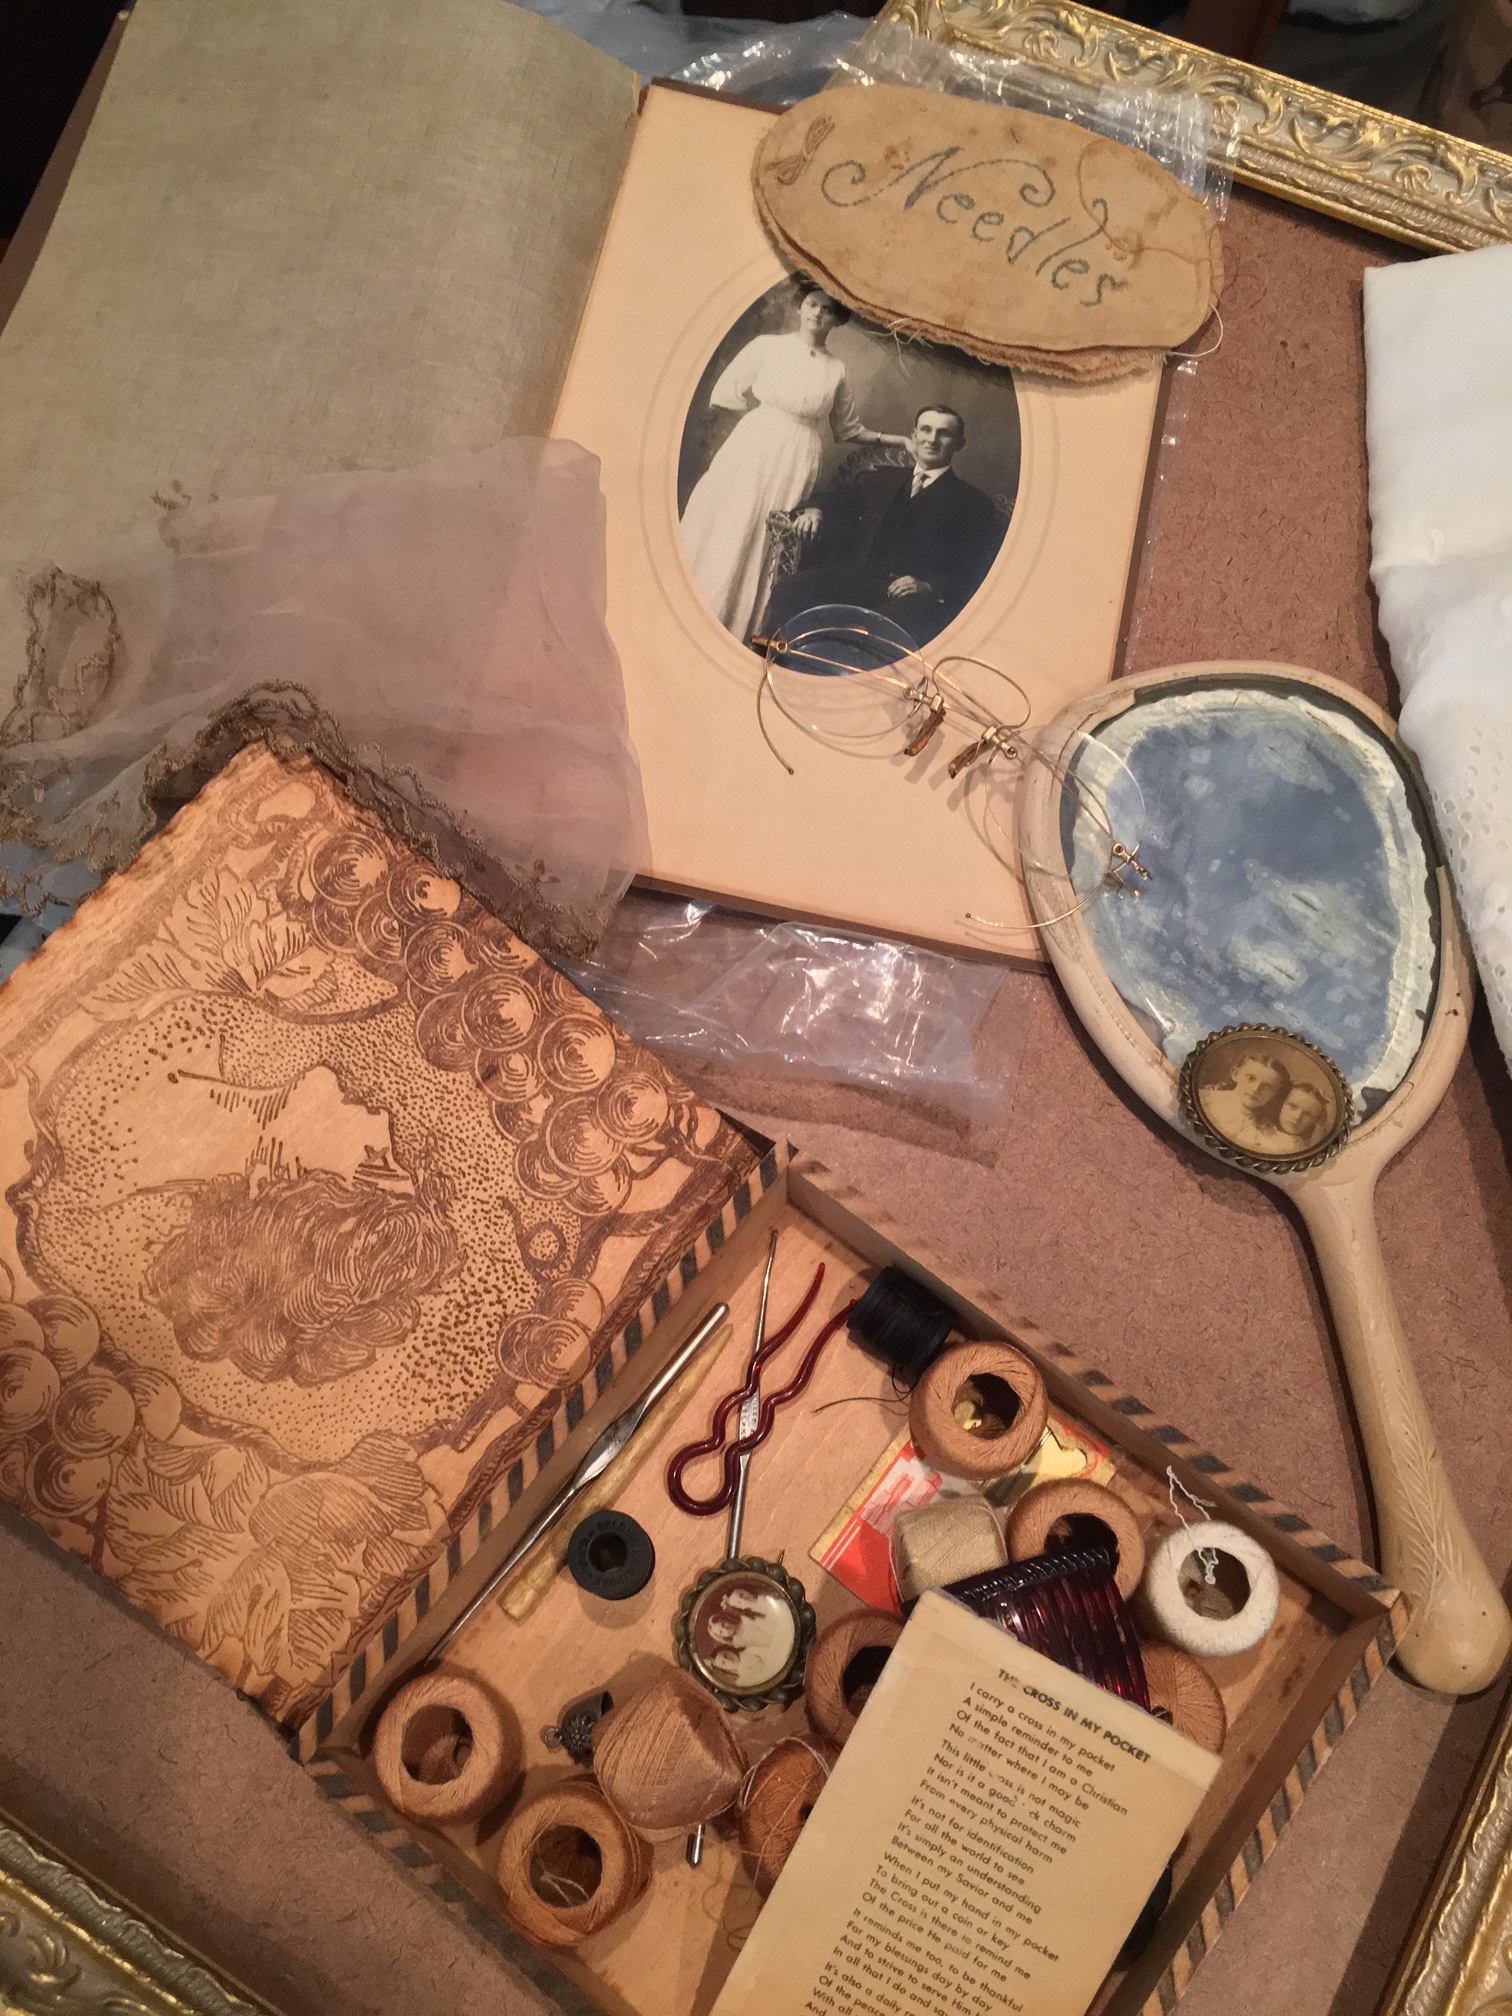 Some of Grace's treasures before collage